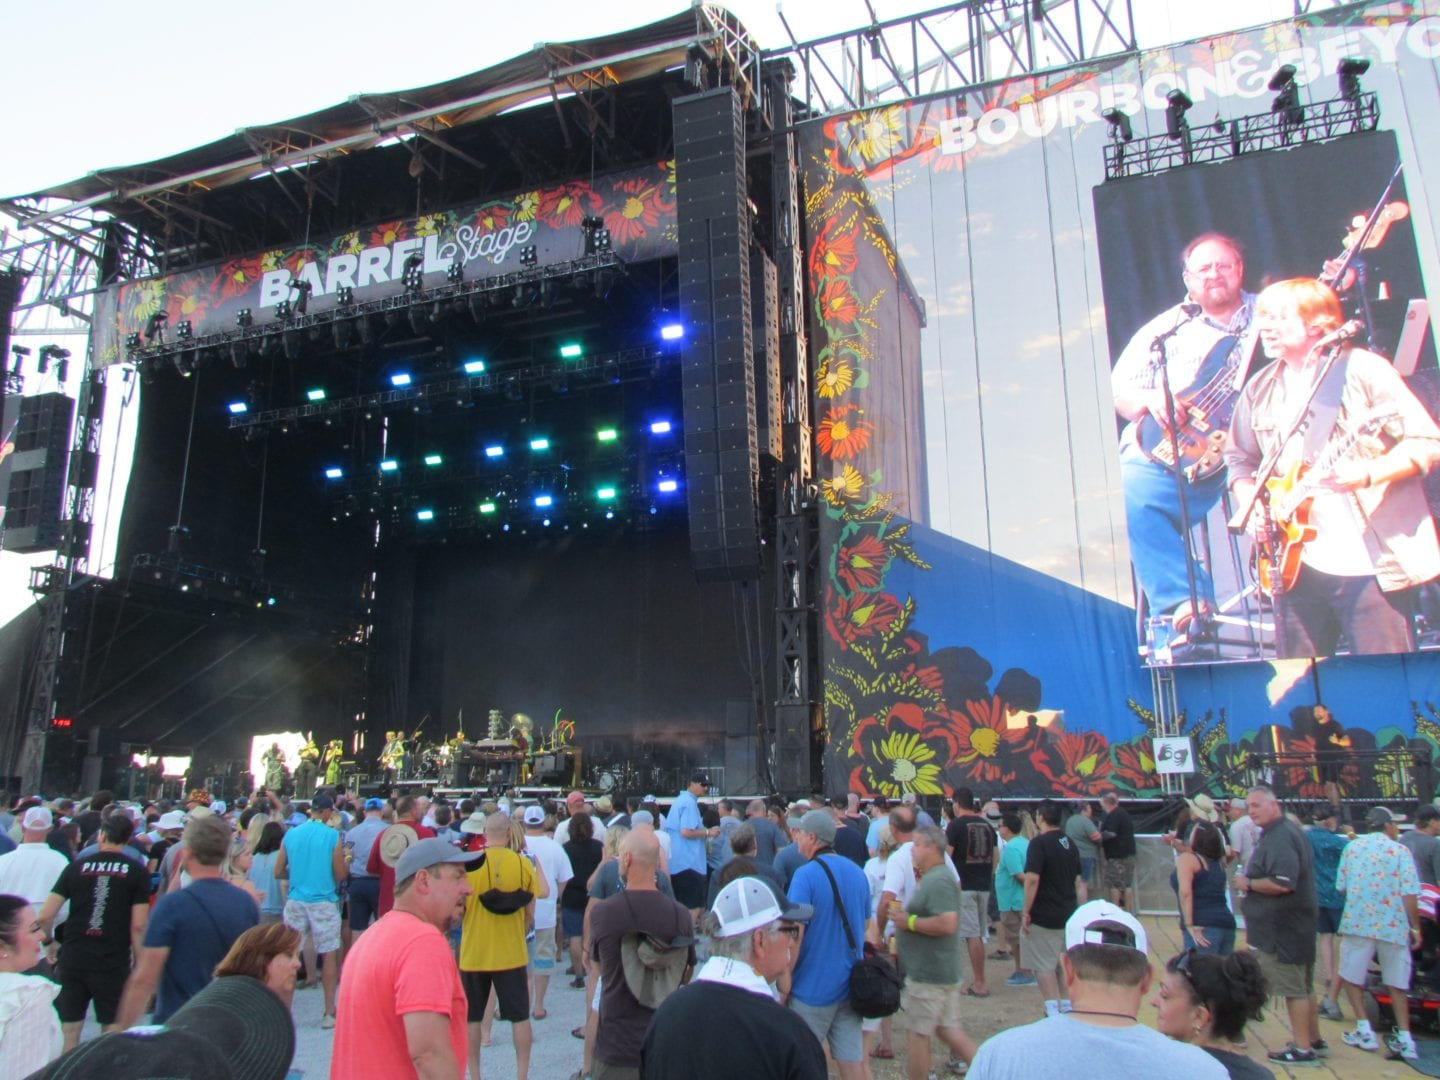 Trey Anastasio on stage with a band